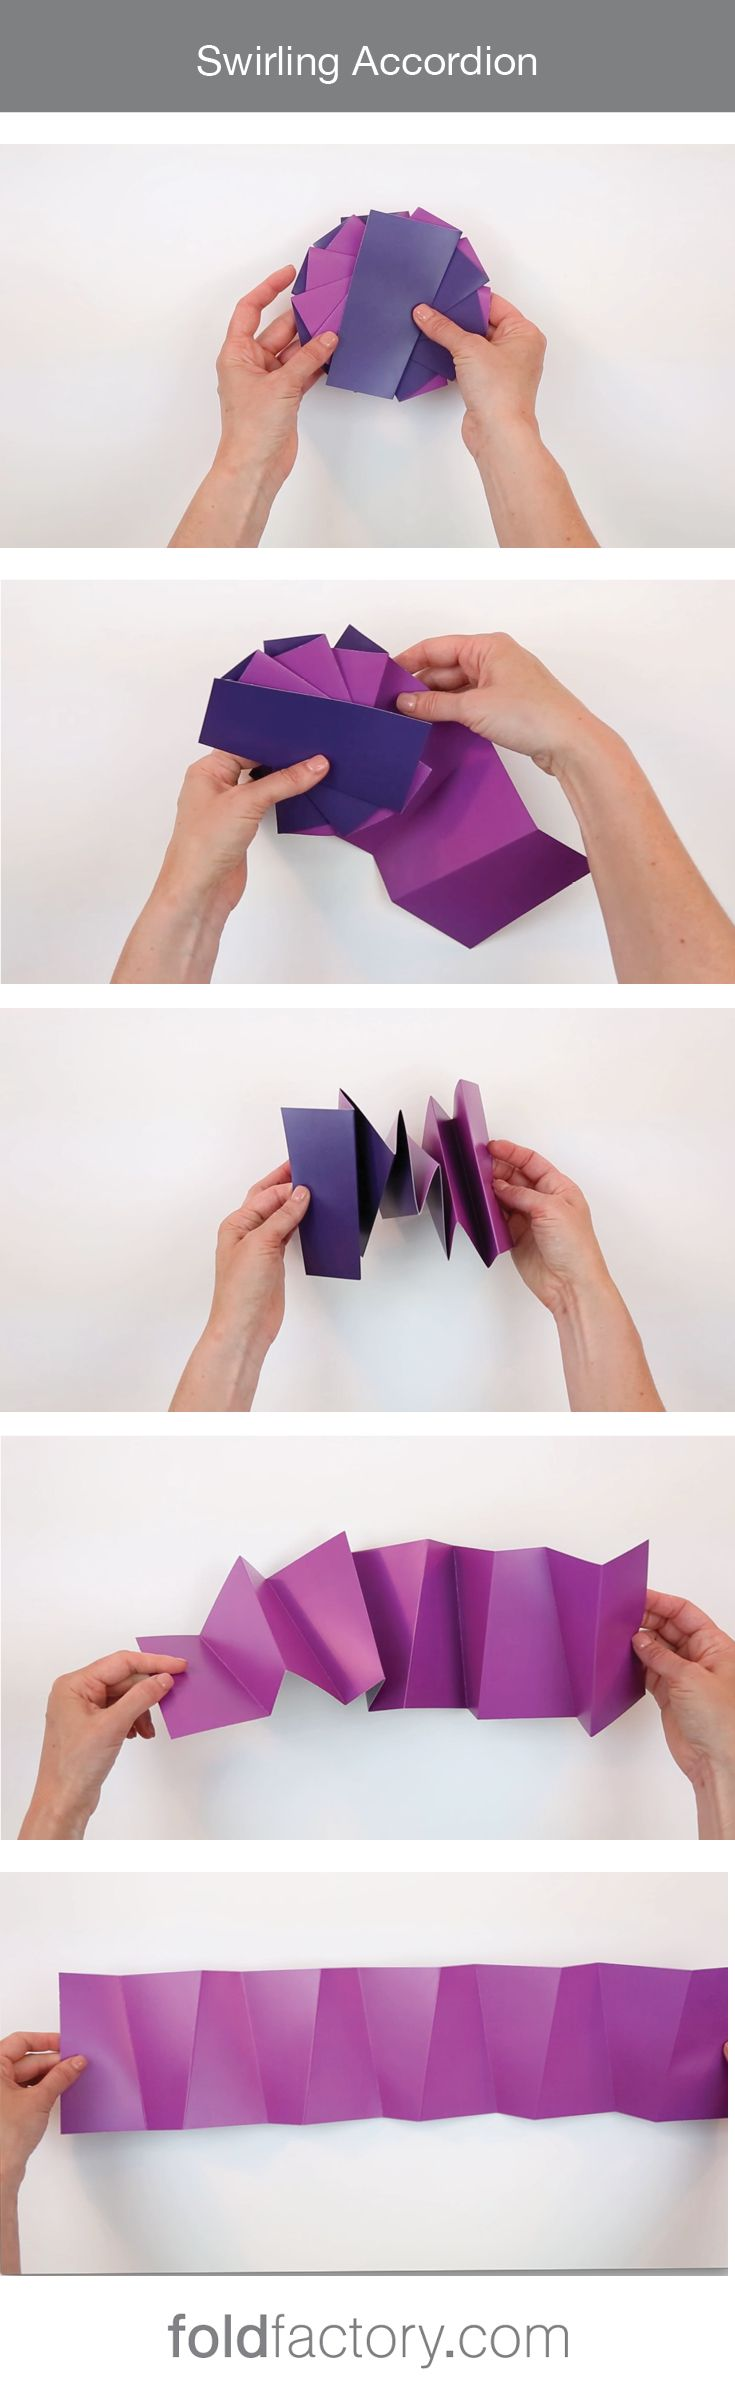 The Swirling Accordion fold is both simple and surprising in its reveal. The finished format is circular in shape, however the unfolded shape is rectangular, which offers a more practical use of space for the content. Swirling accordions are fun to design and unfold, and intuitively fold back into place as the angled scores work in unison to swirl the panels around.Uses: #SpecialEvents #Promotion #Marketing #DirectMail